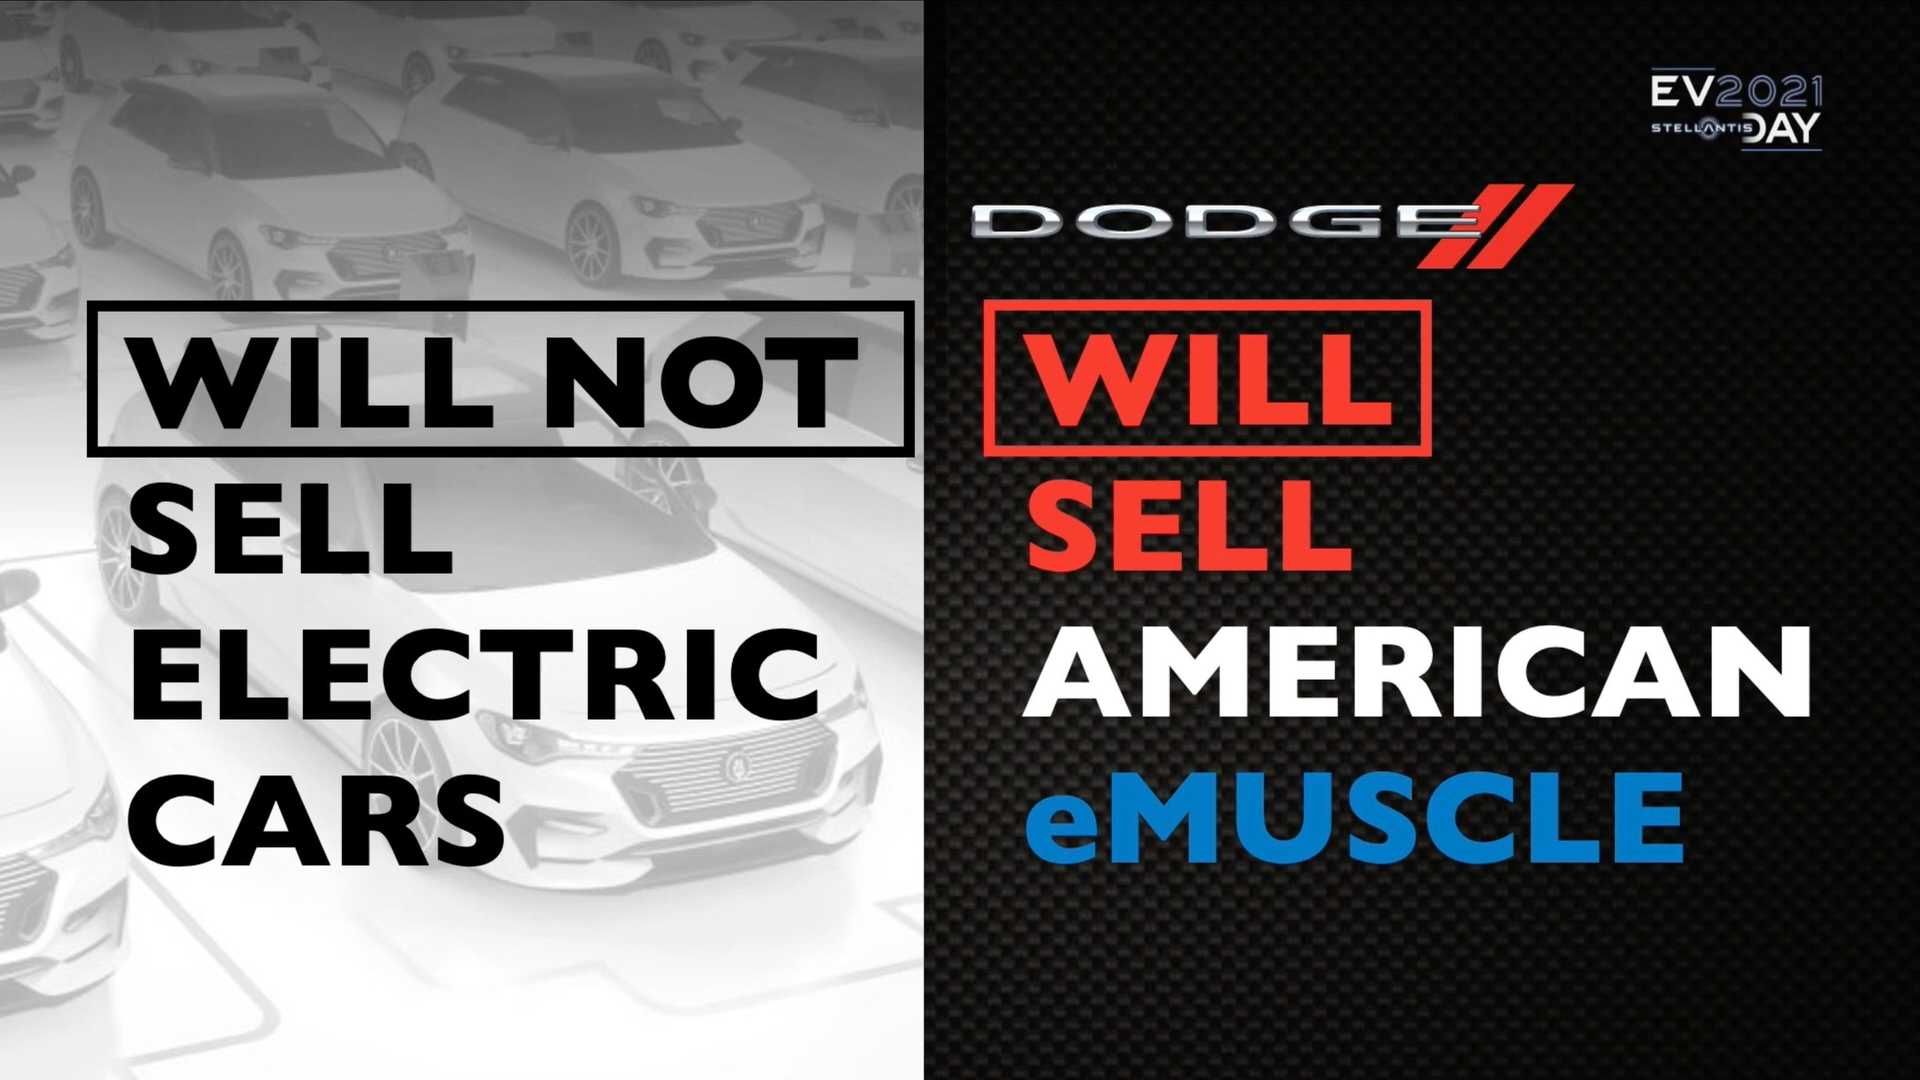 Dodge-Electric-Muscle-car-concept-teasers-7